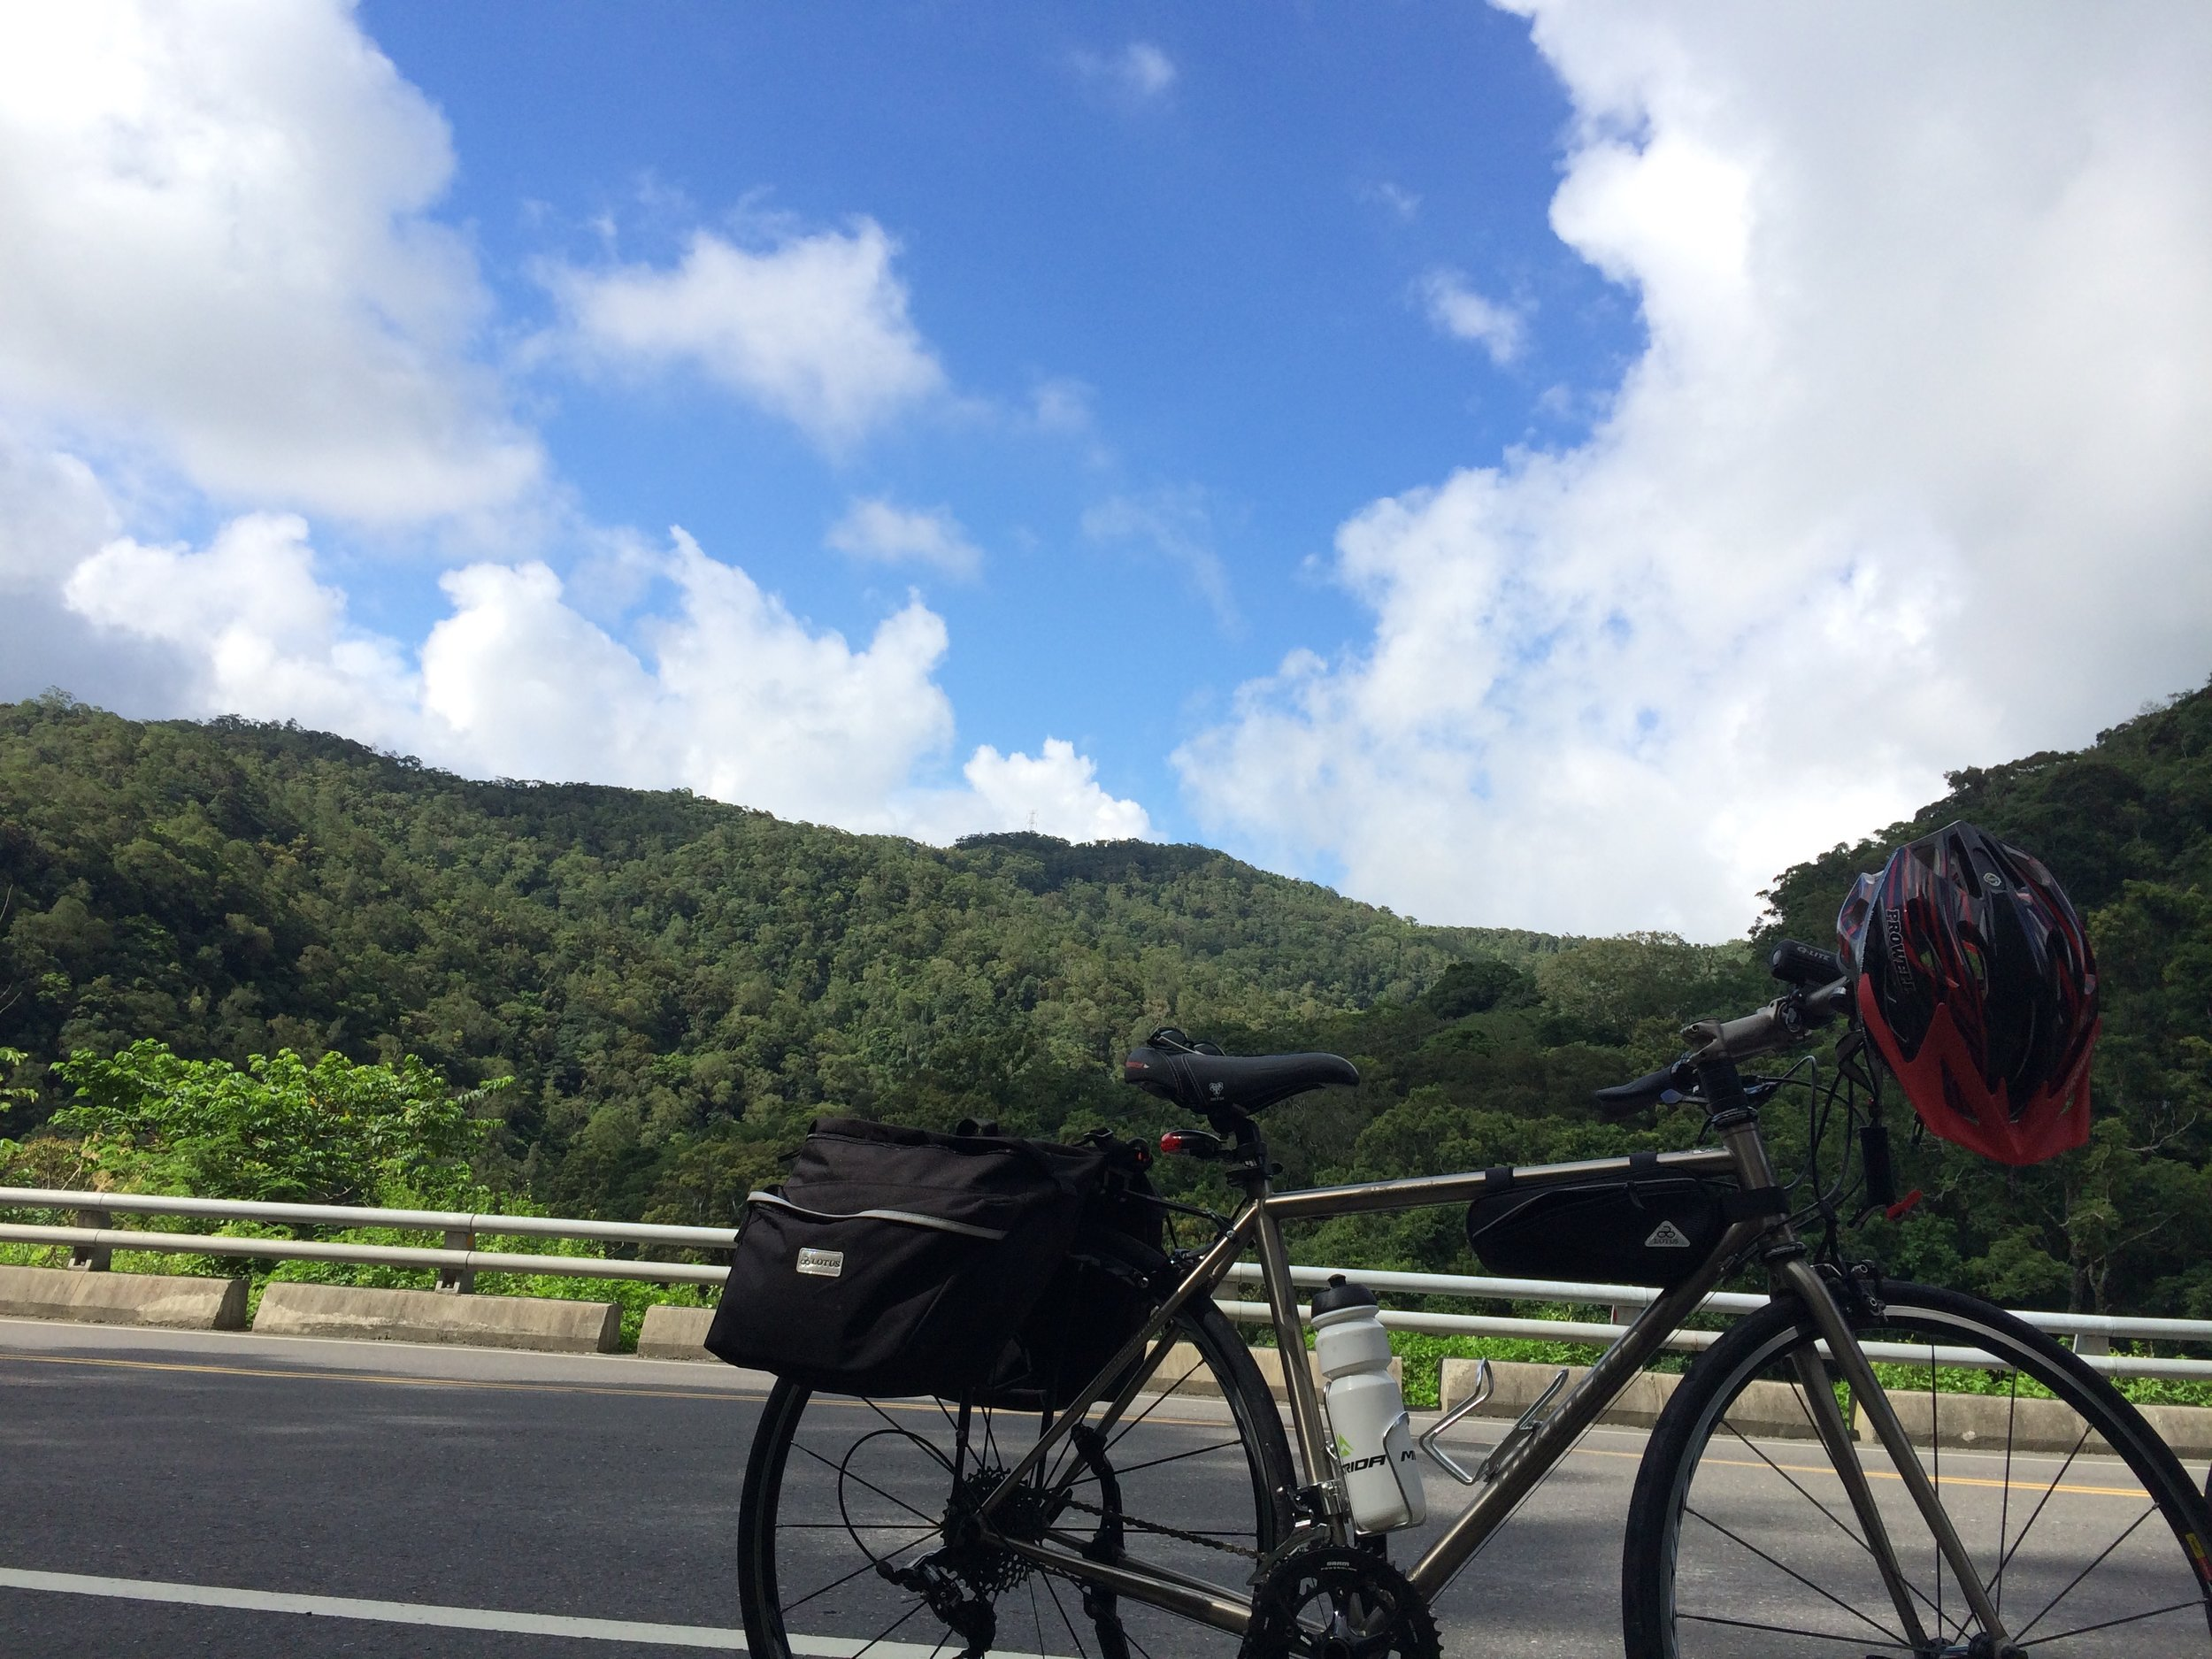 A brief stop at a highway path around Taitung County, Taiwan